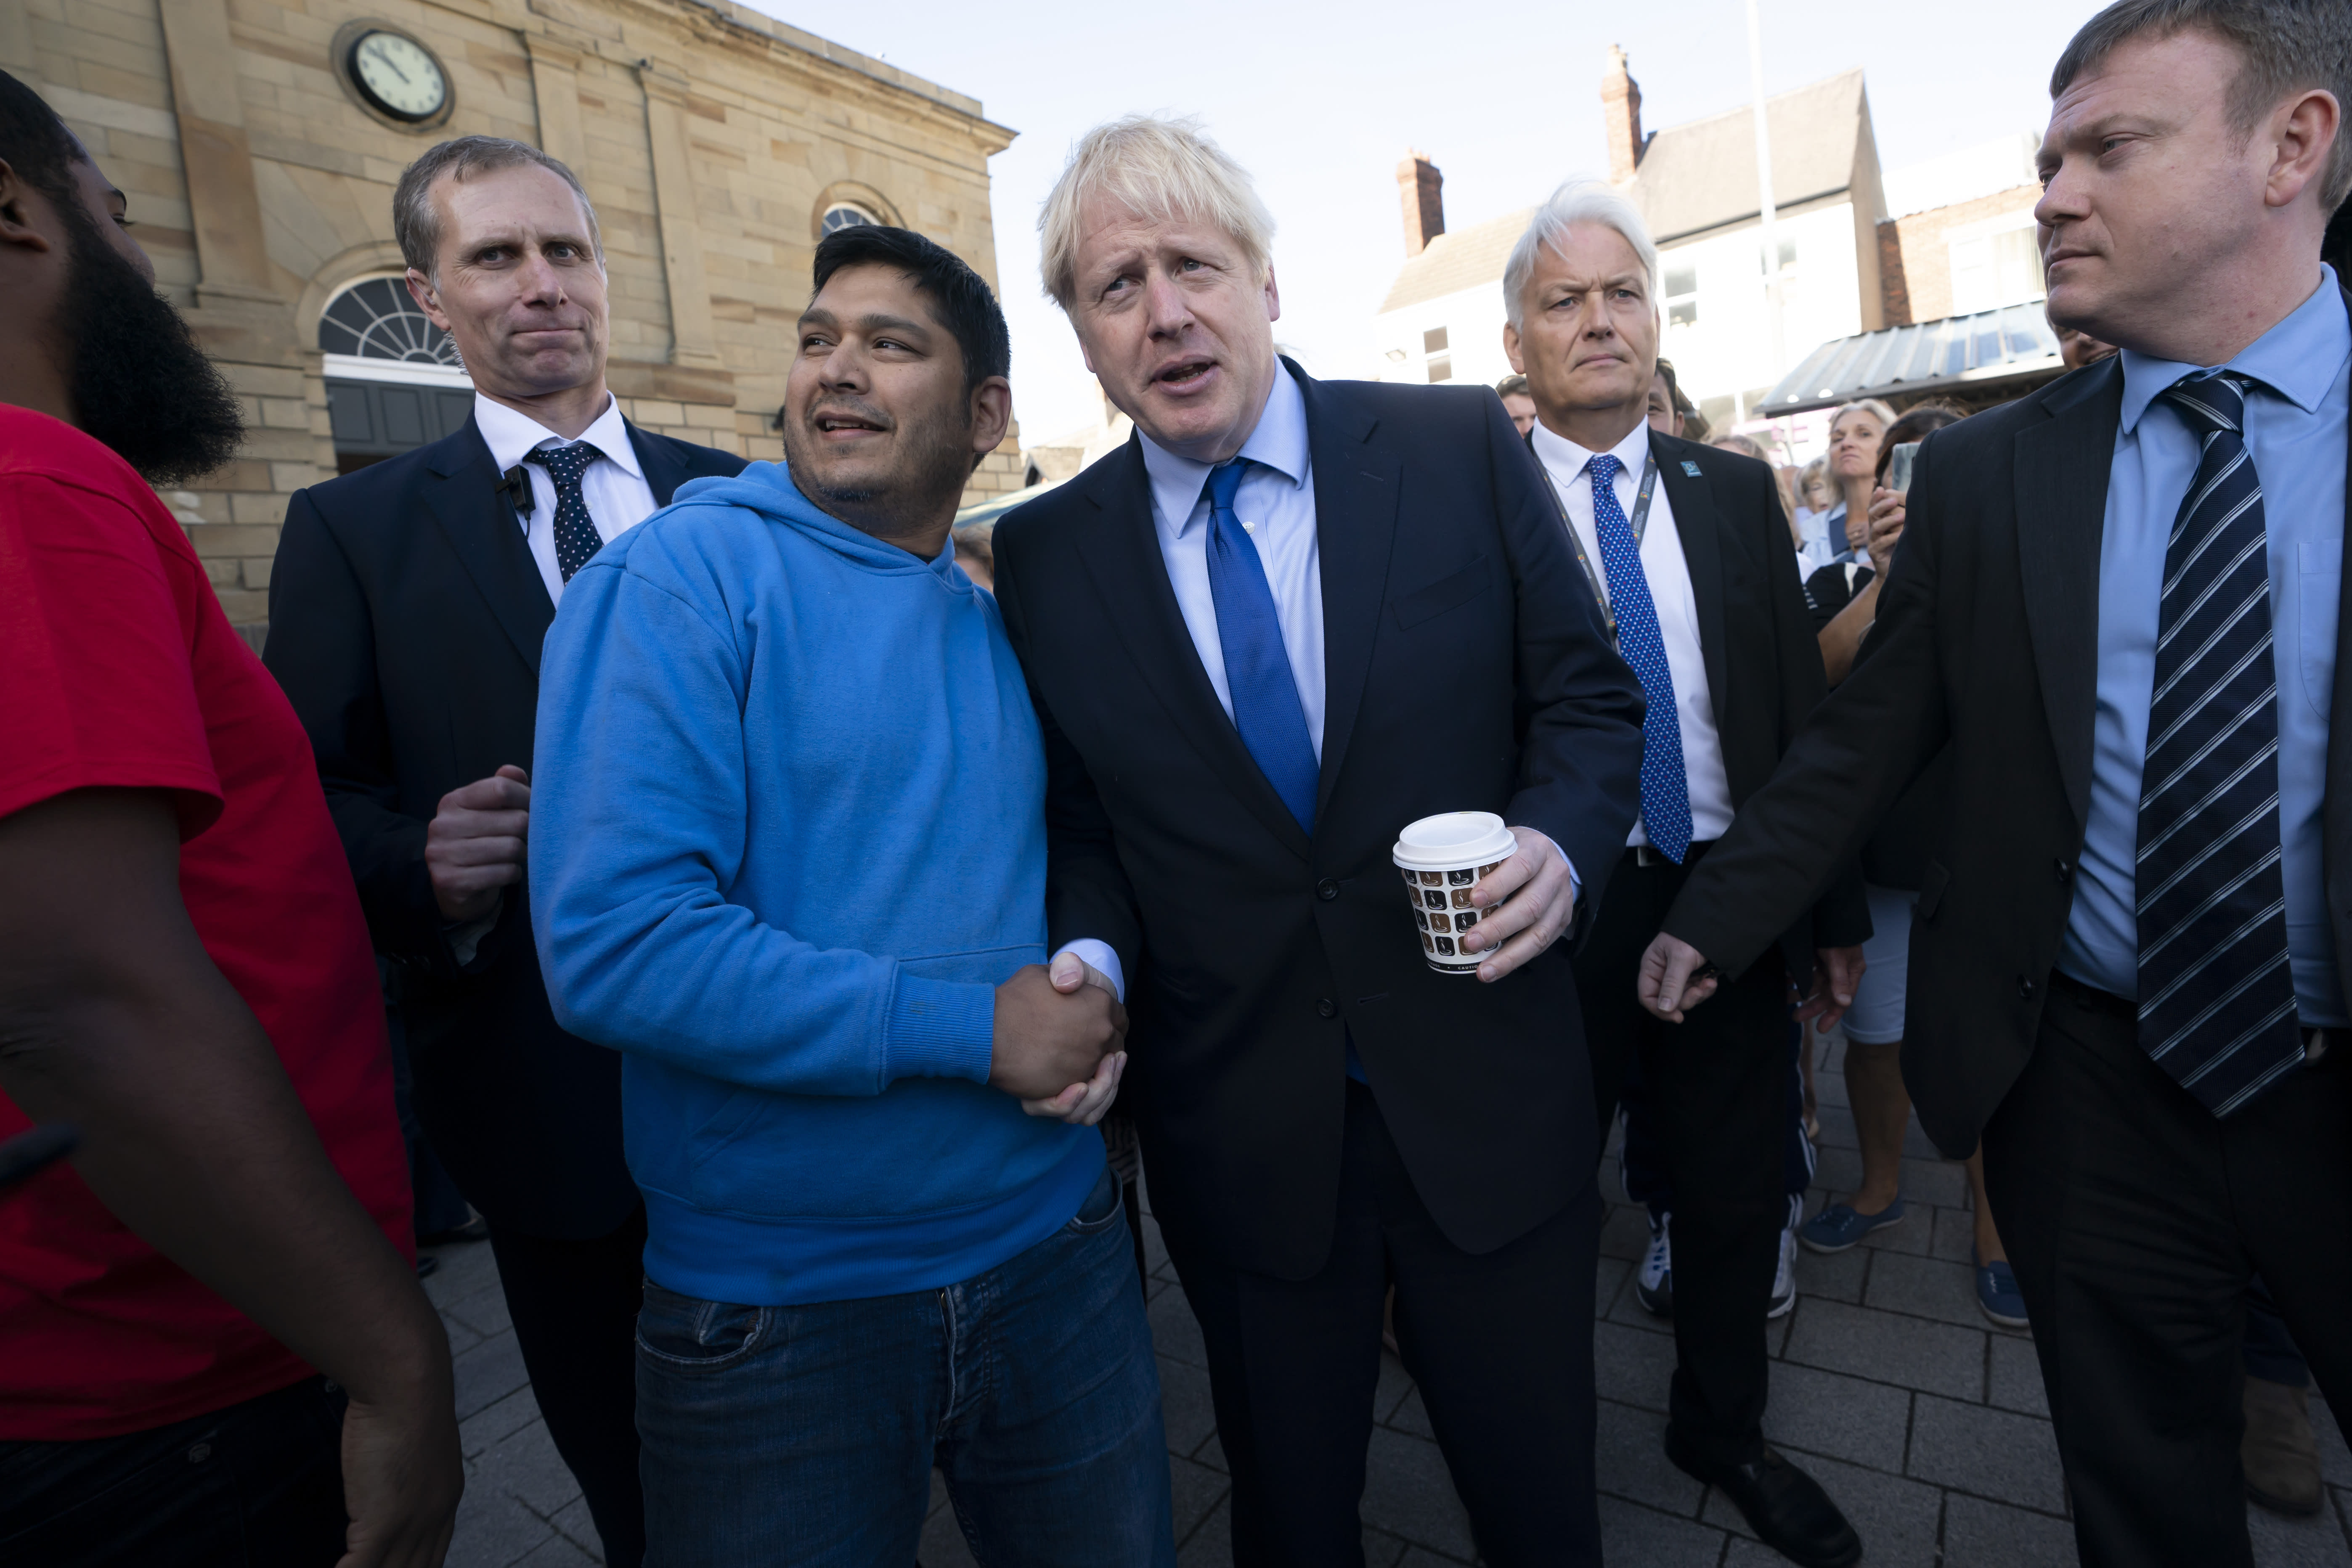 Prime Minister Boris Johnson shakes hands with a member of the public during his visit Doncaster Market, in Doncaster.